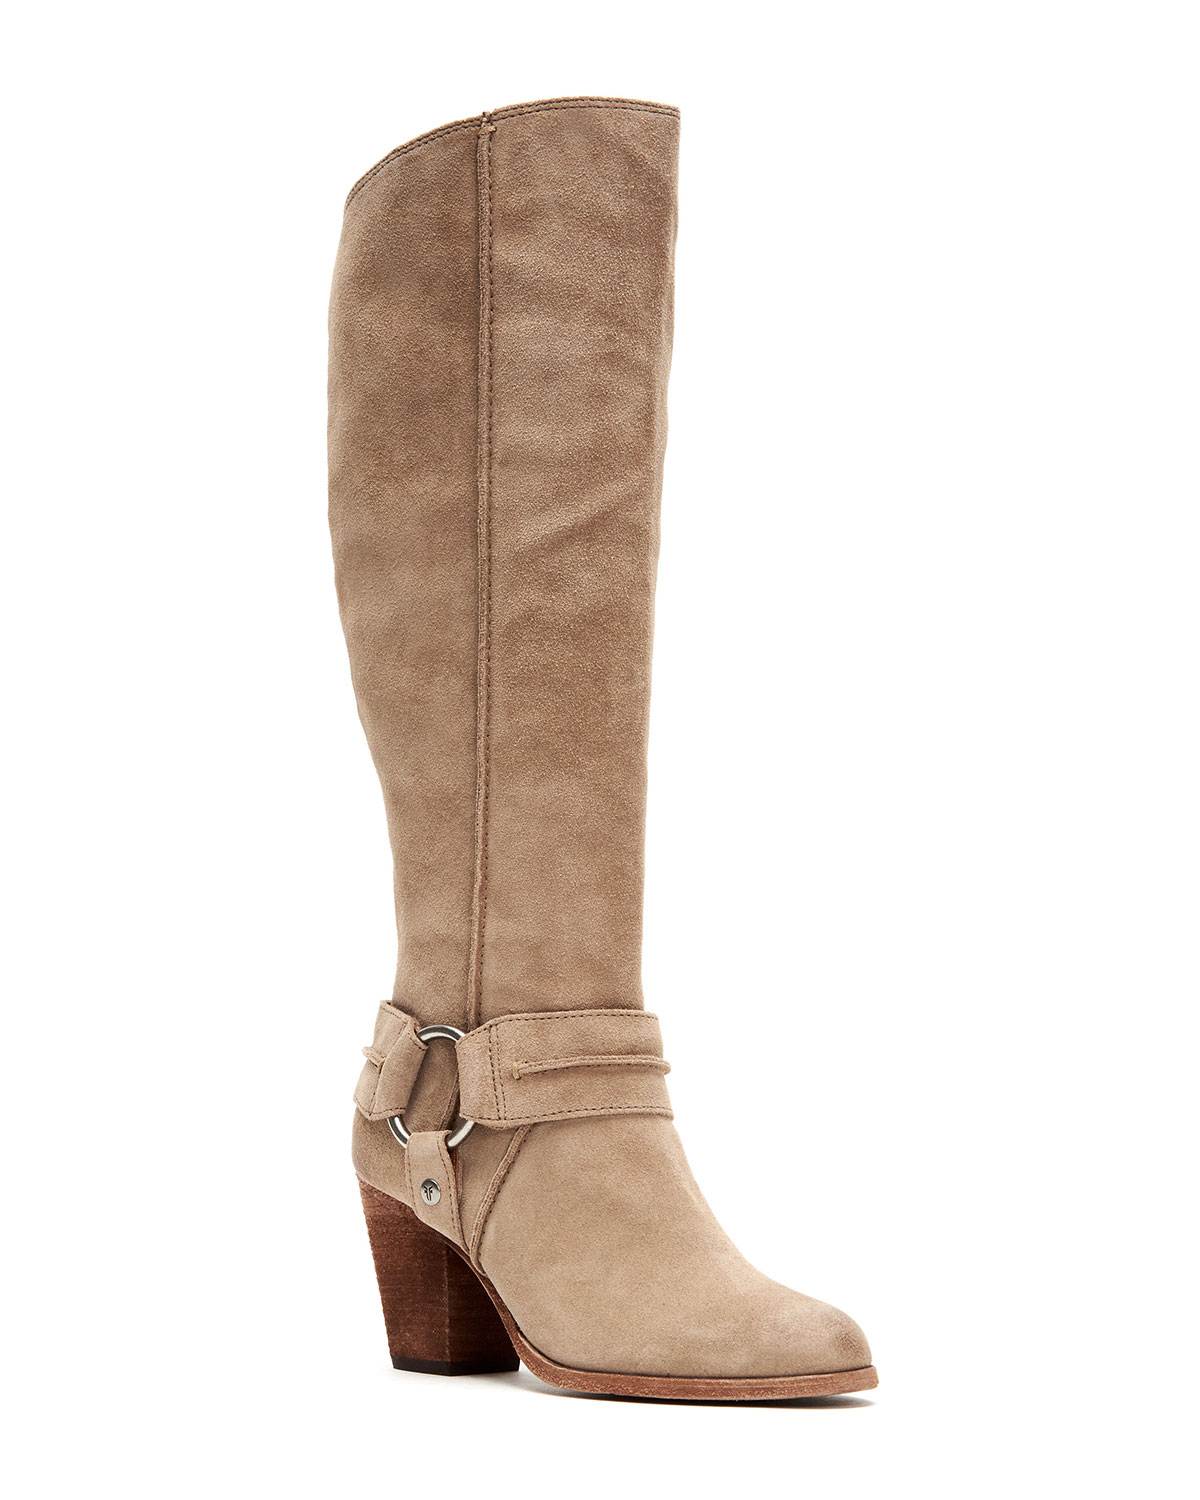 Frye Boots ESSA TALL SUEDE MOTO HARNESS BOOTS